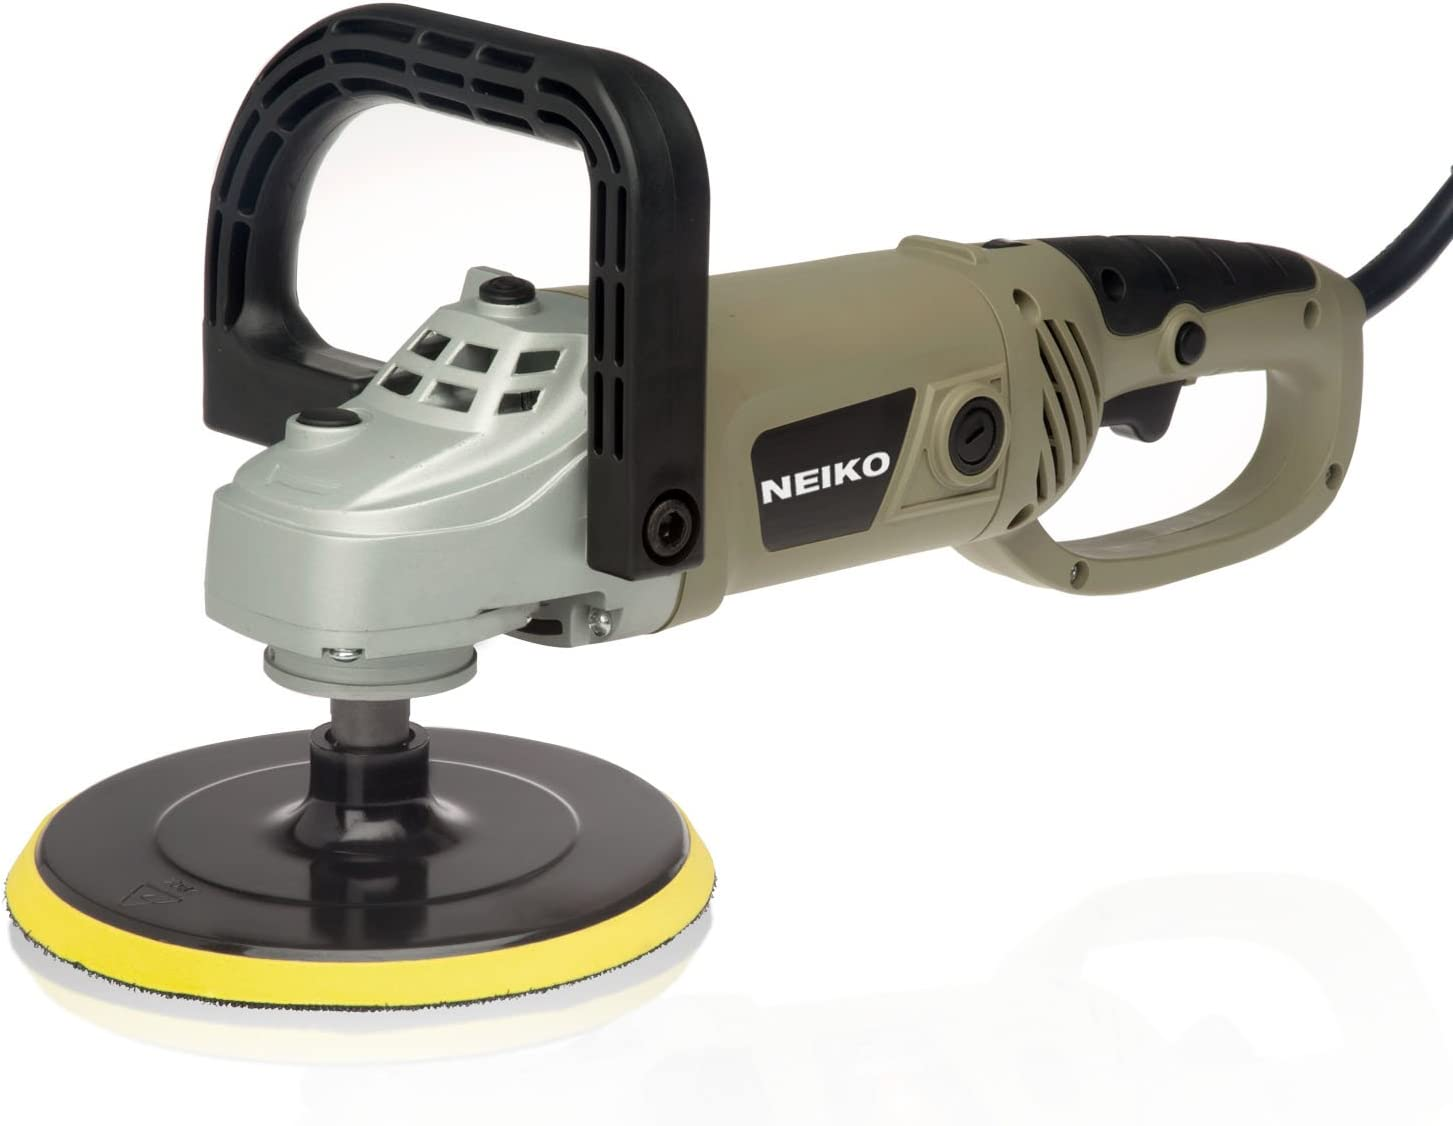 Neiko 7-Inch Electric Polisher and Buffer